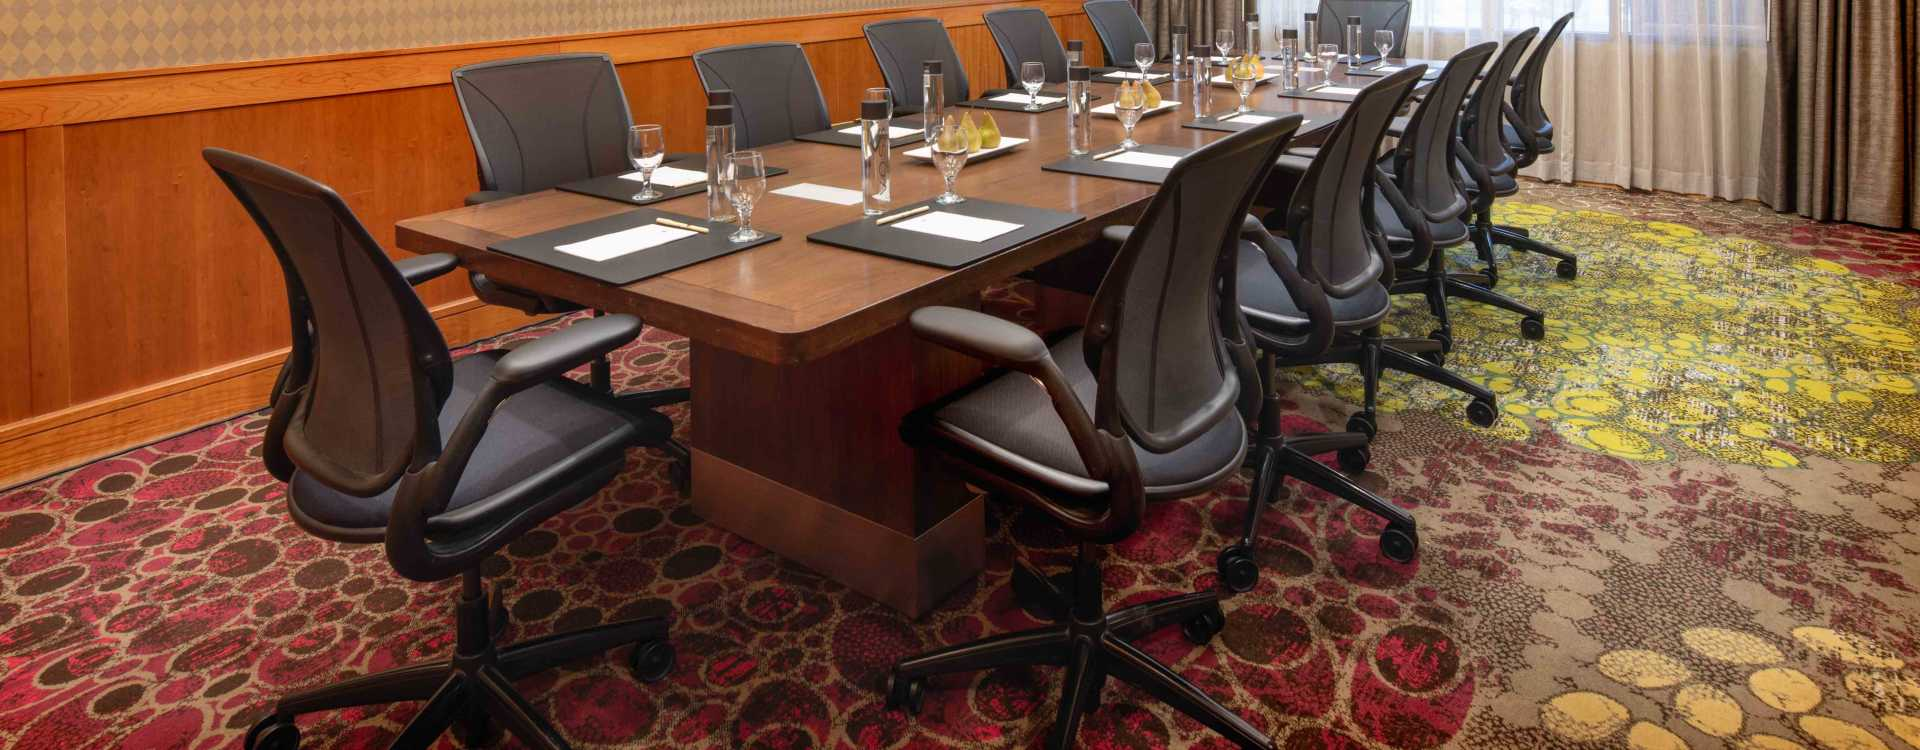 Pinnacle Board Room